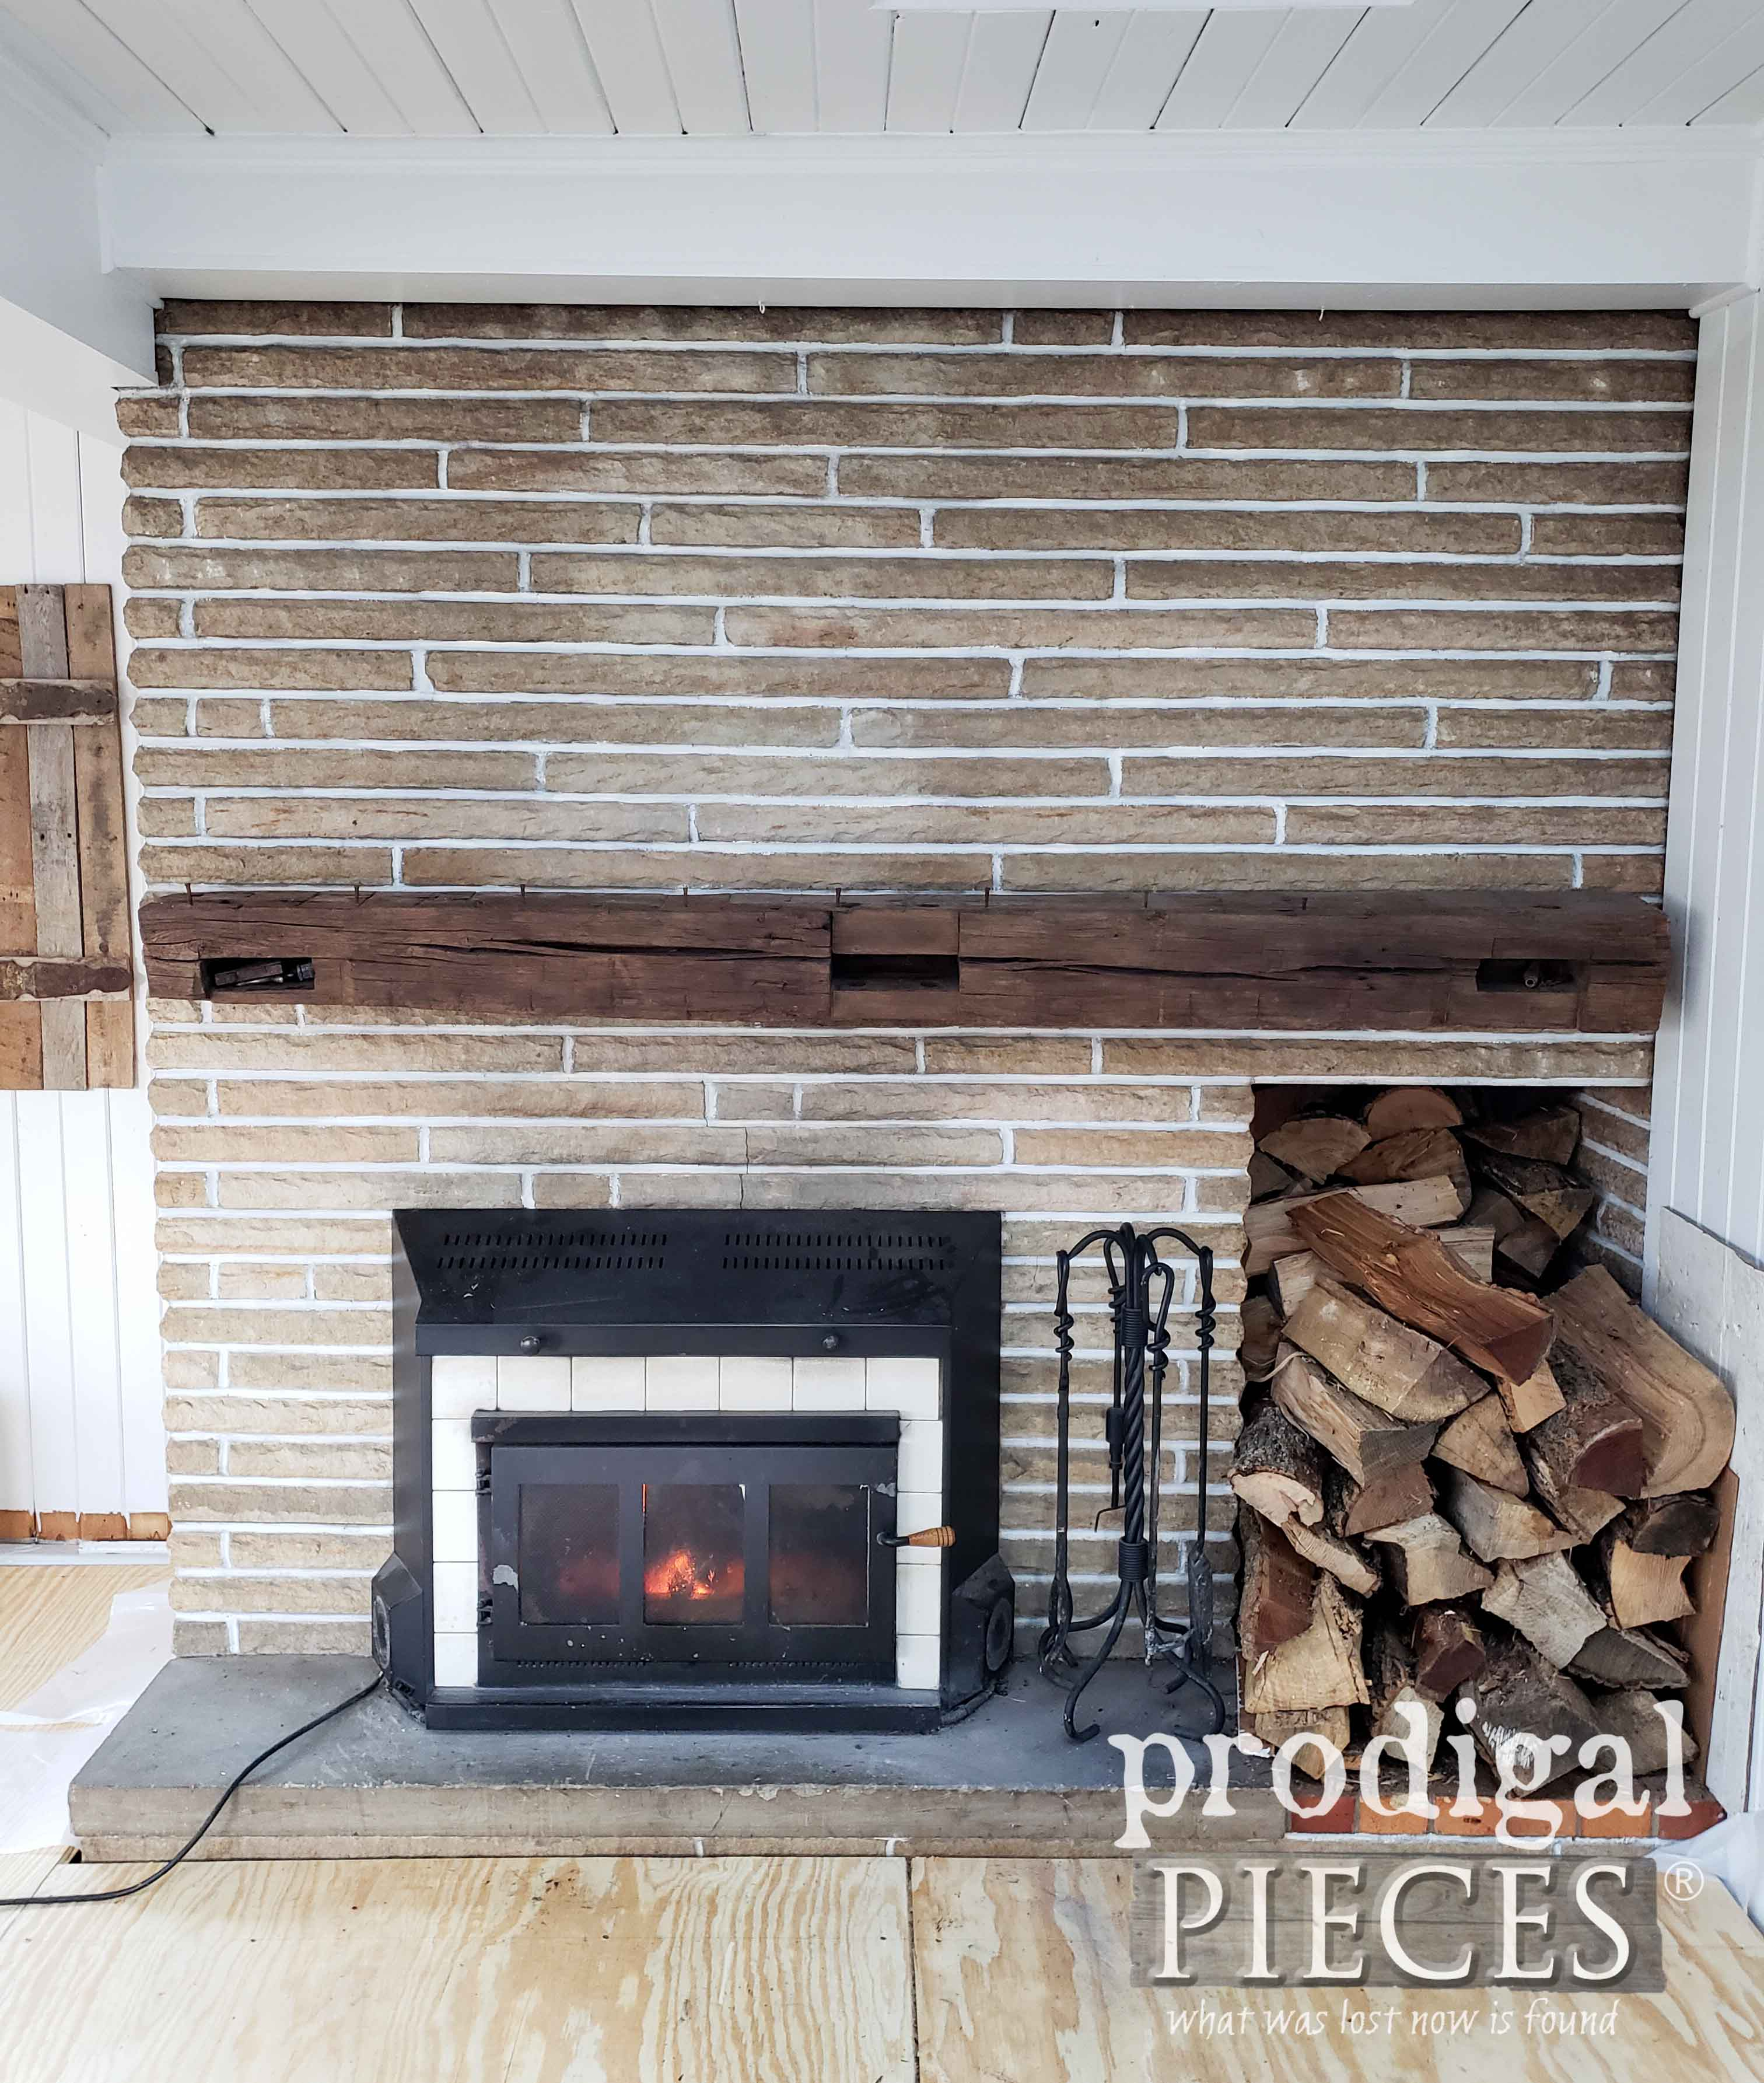 Farmhouse Style Sandstone Fireplace Before Makeover by Prodigal Pieces | prodigalpieces.com